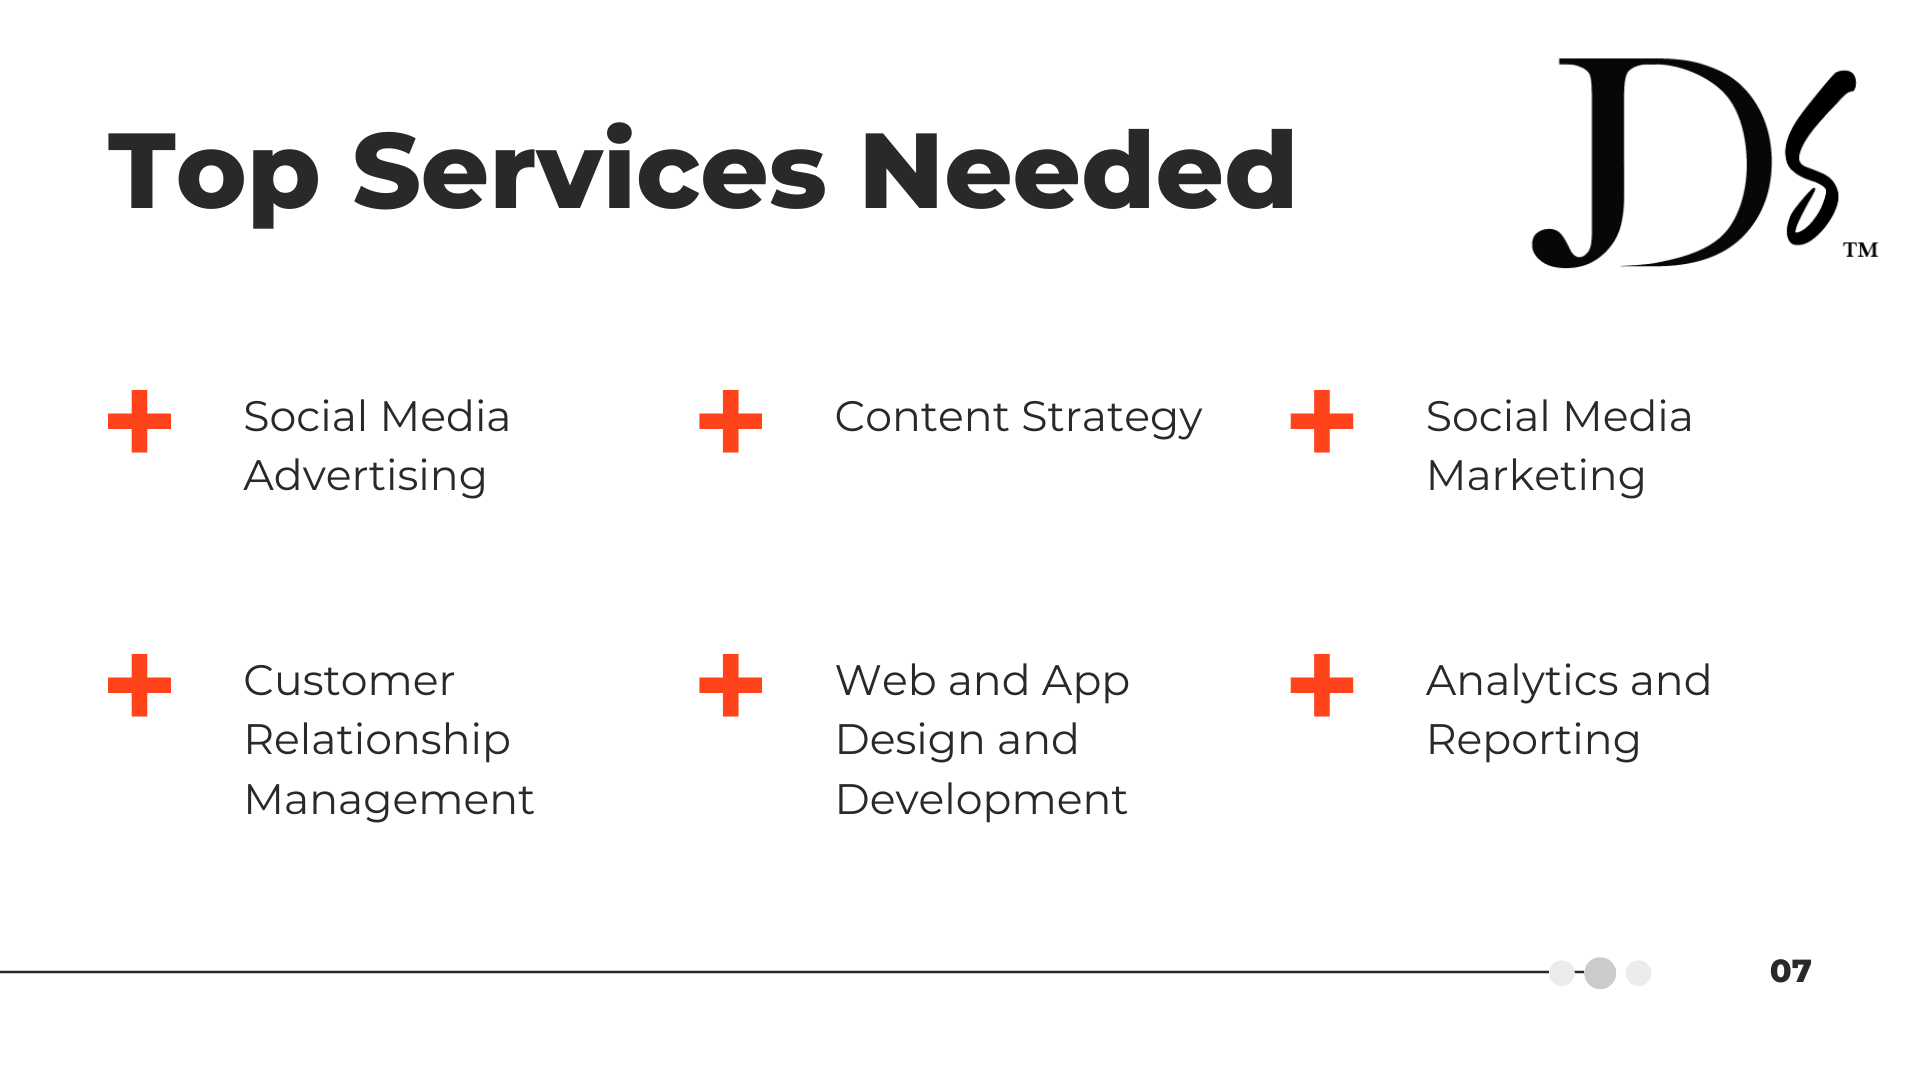 Top Services Needed | Social Media Advertising | Content Strategy | Social Media Marketing | Customer Relationship Management | Web and App Design and Development | Analytics and Reporting